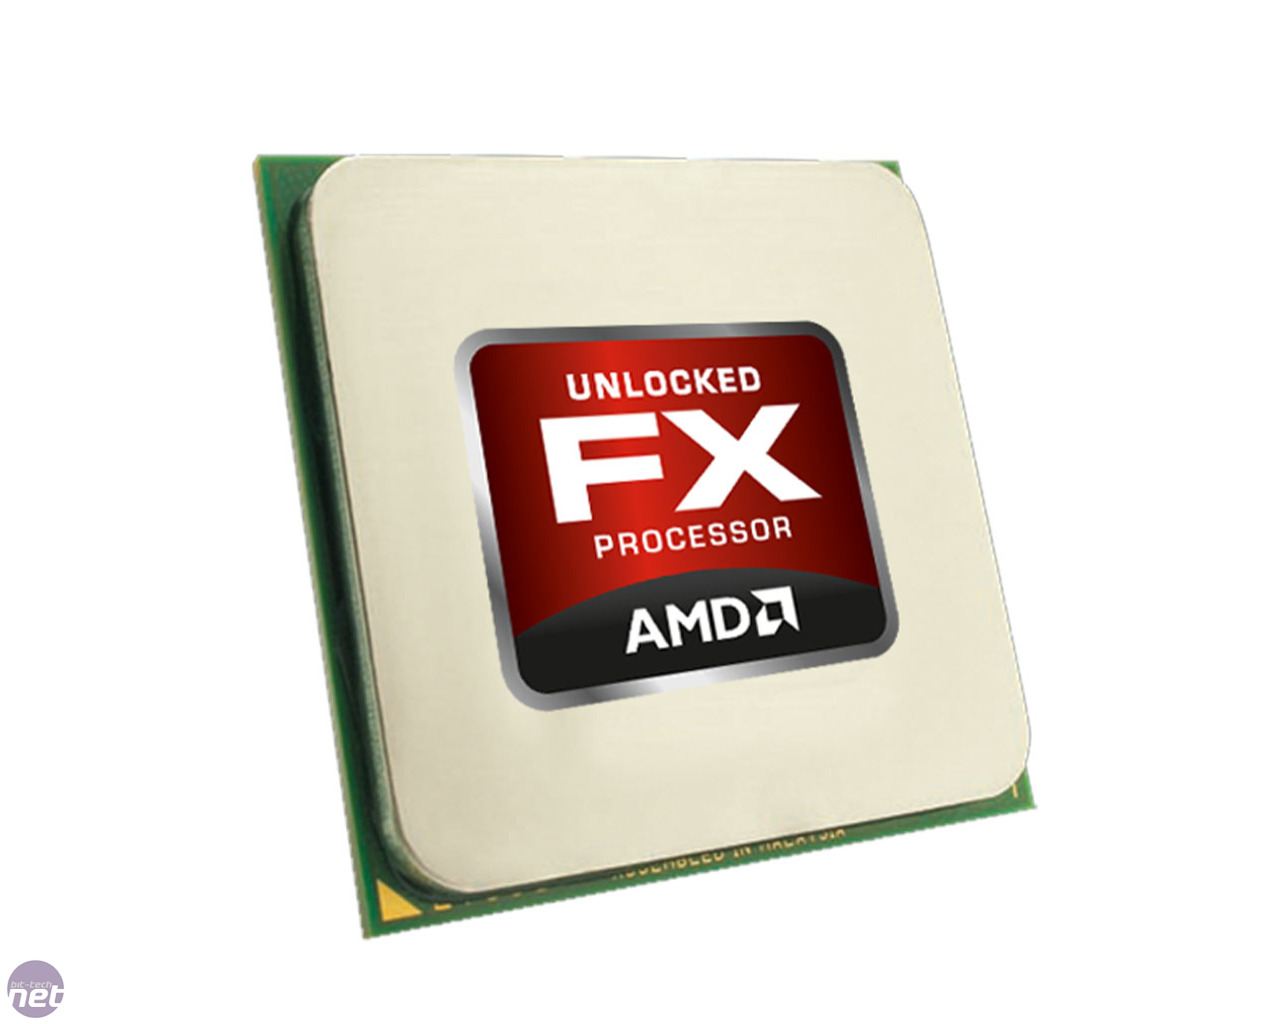 AMD FX-8350 review | bit-